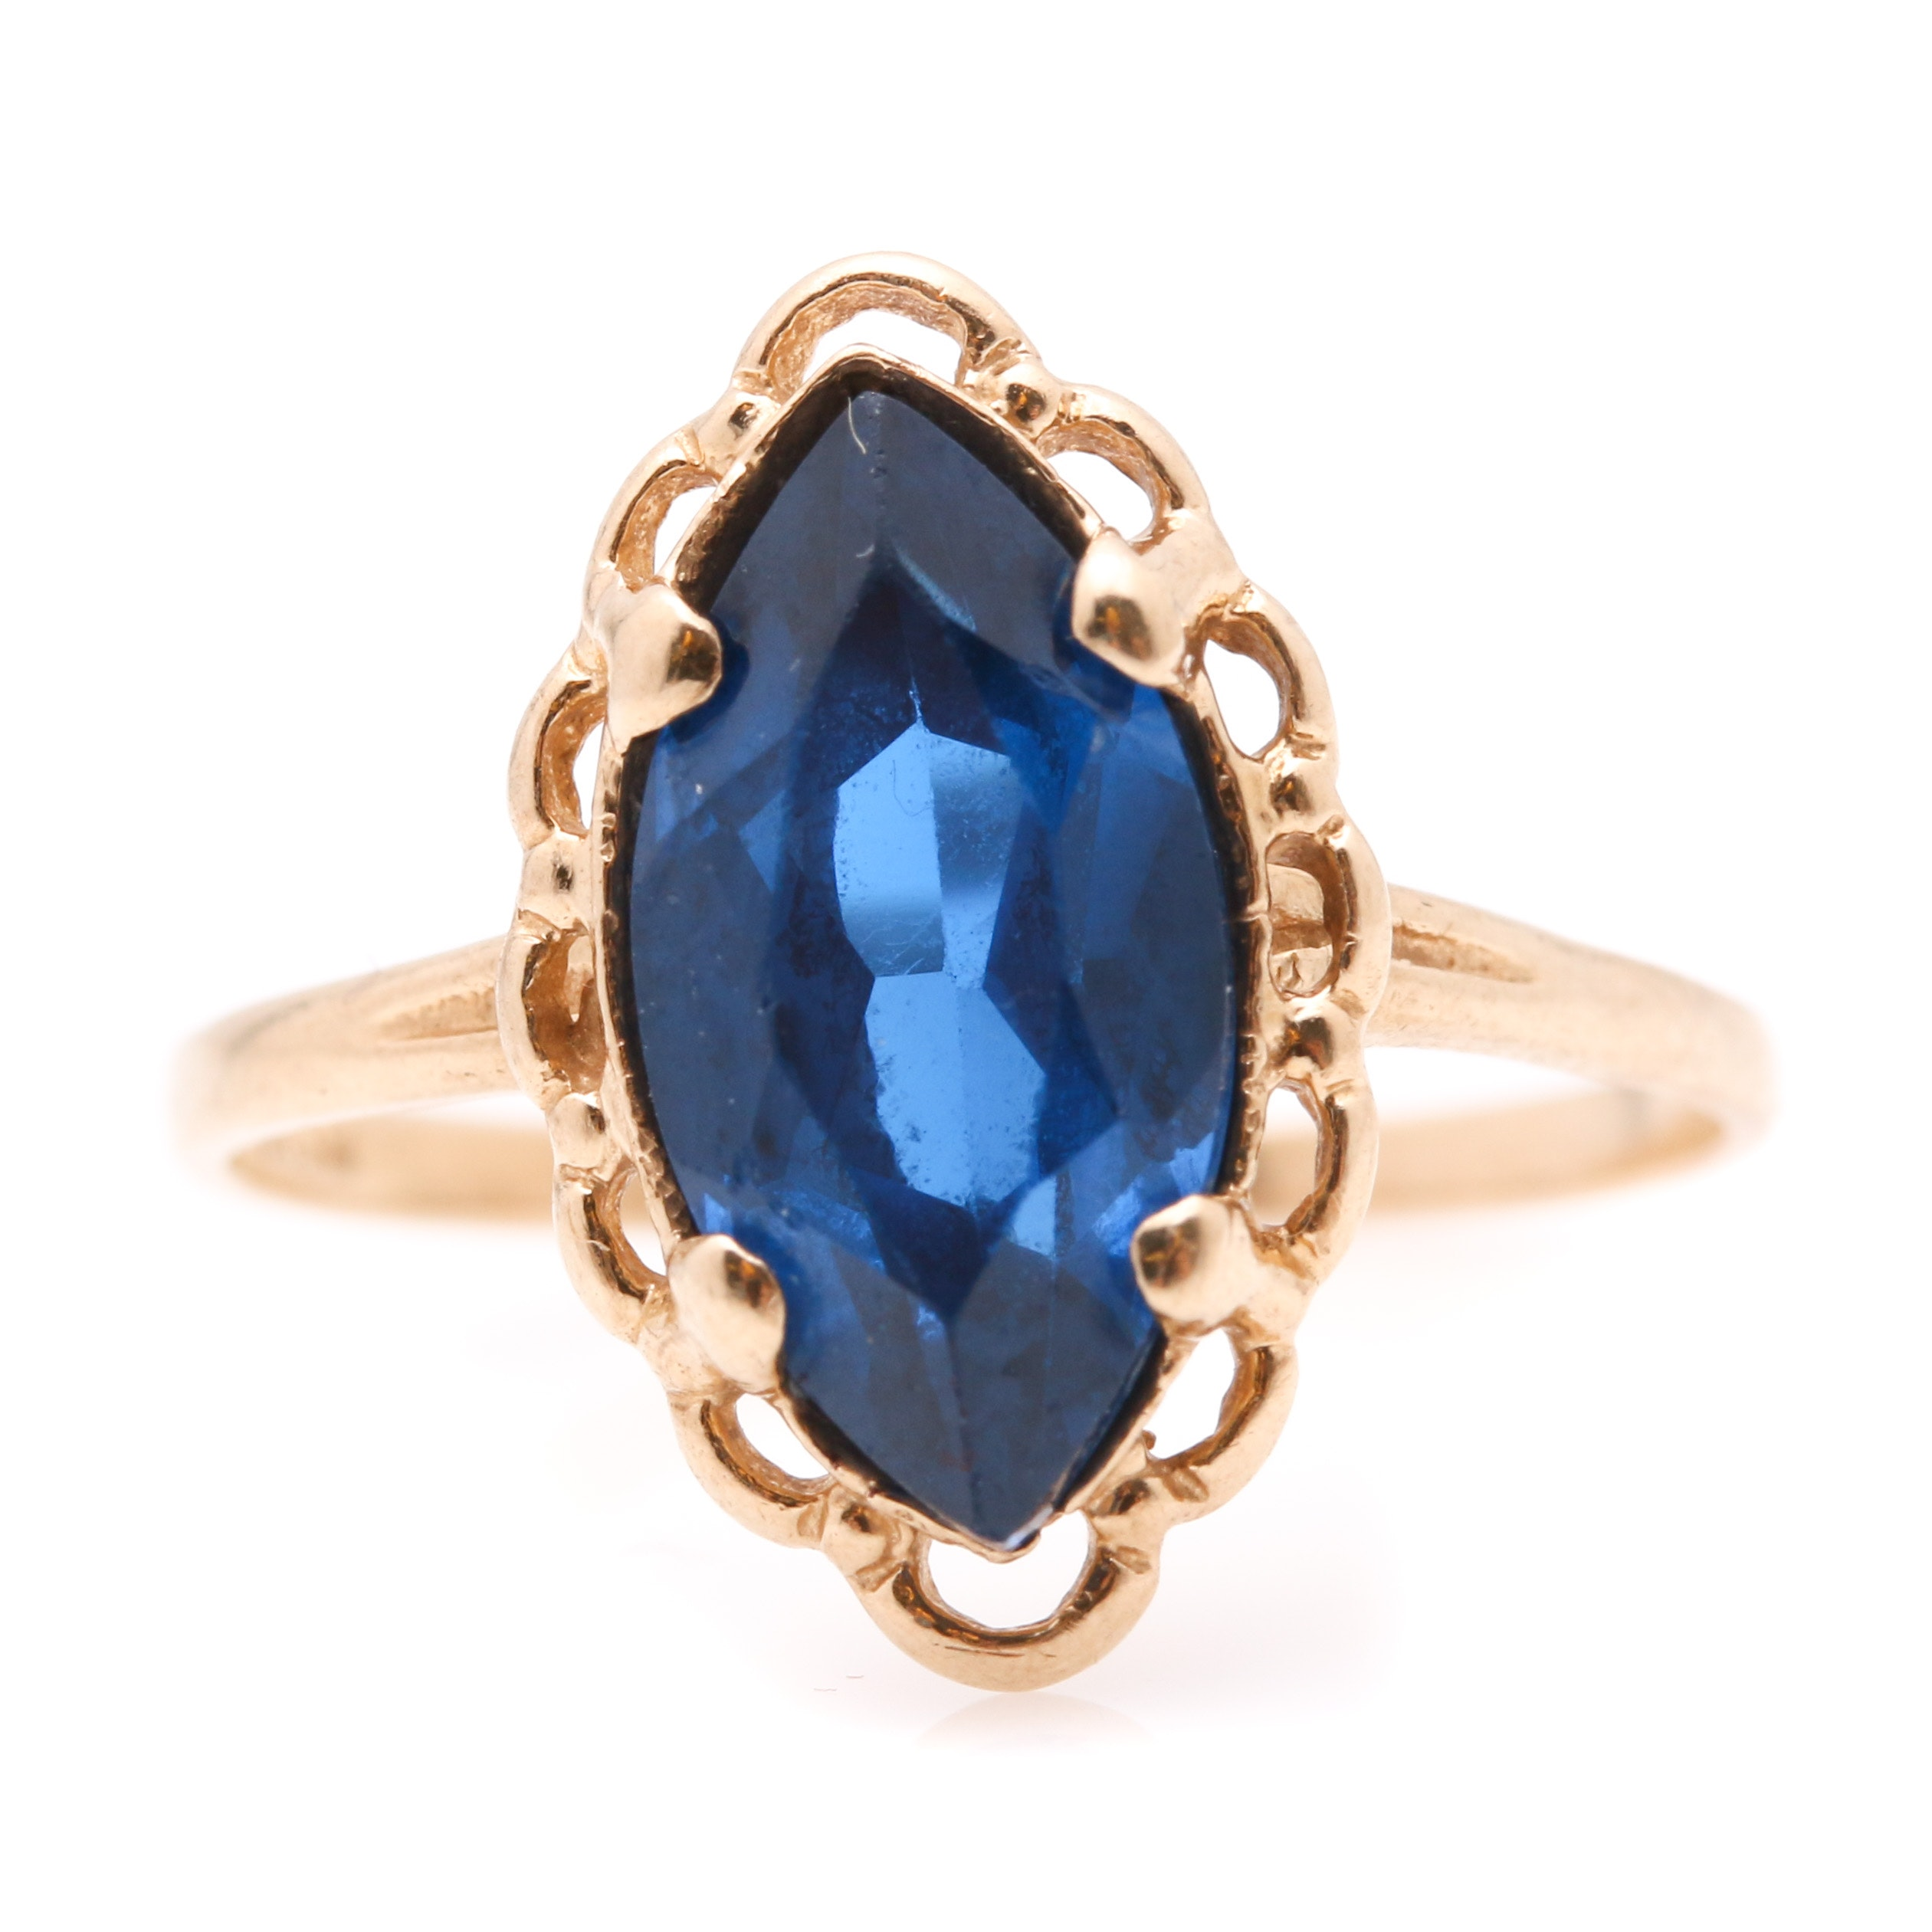 10K Yellow Gold Blue Spinel Ring